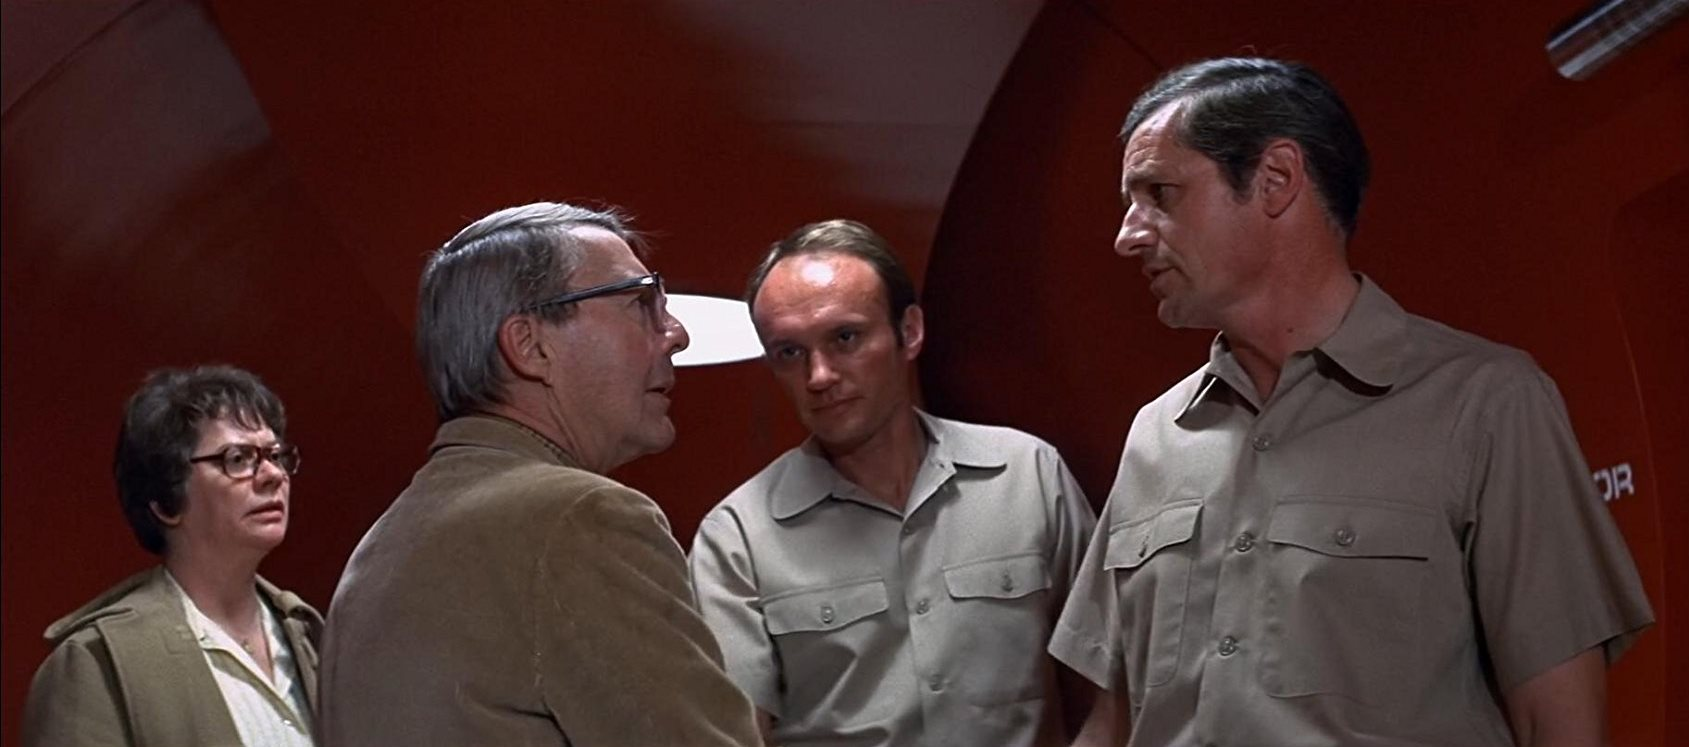 The Wildfire scientists - Kate Reid, David Wayne, James Olson, Arthur Hill - in The Andromeda Strain (1971)